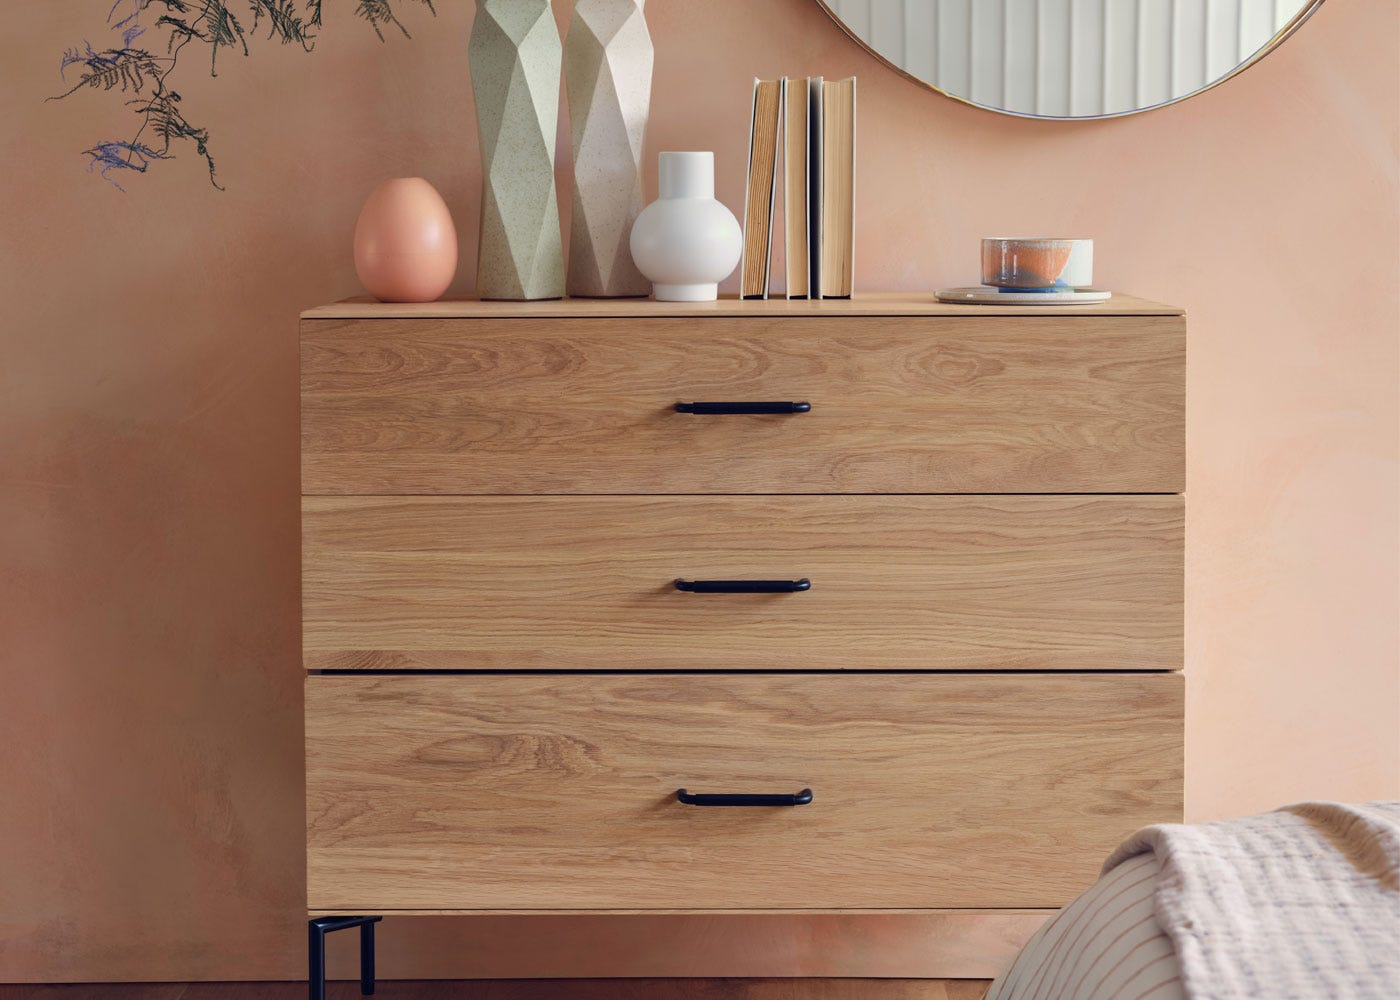 As shown: 3 Drawer chest.